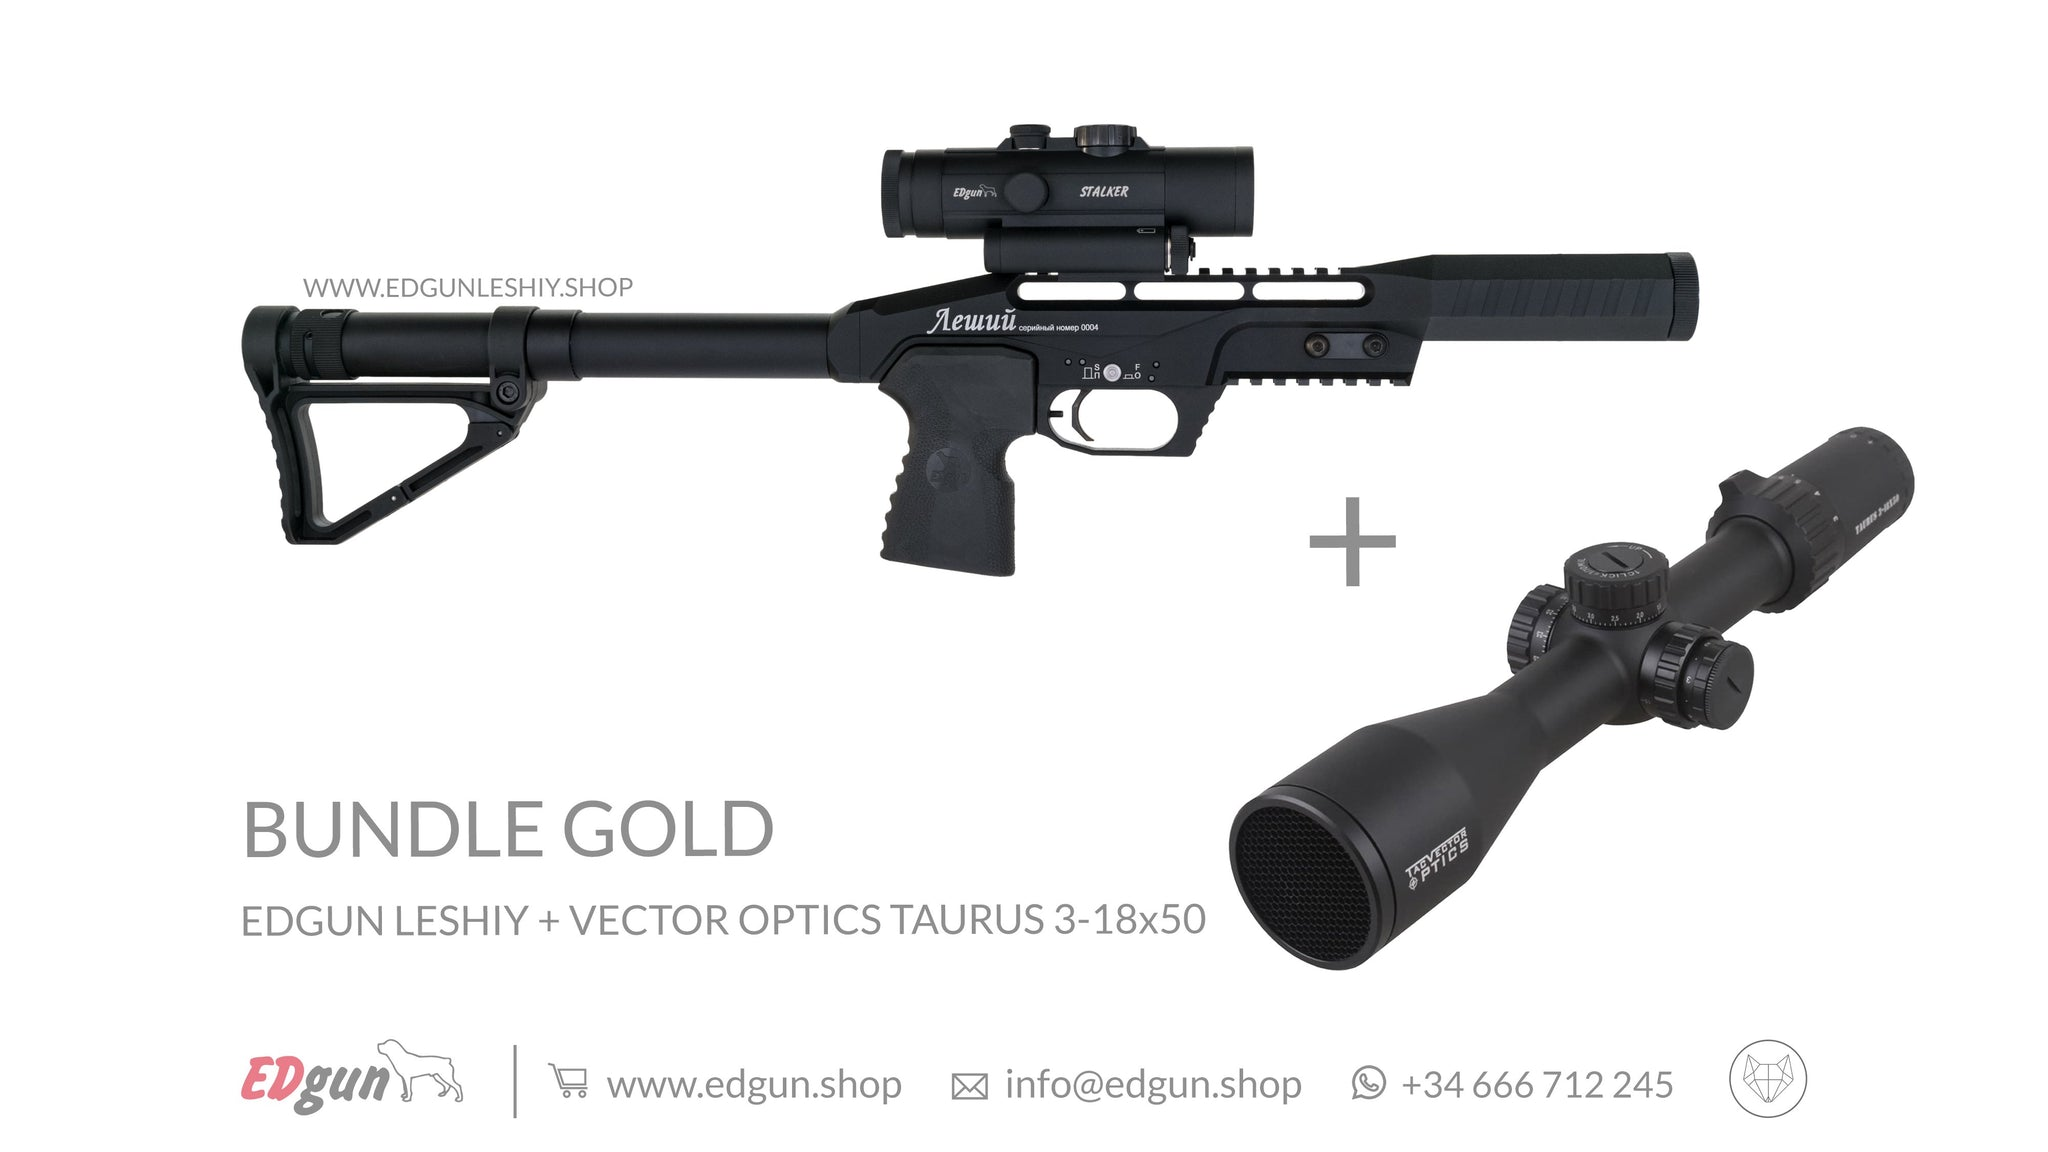 KIT · BUNDLE GOLD: <br> Edgun Leshiy Black + Vector Optics Taurus 3-18x50 FFP